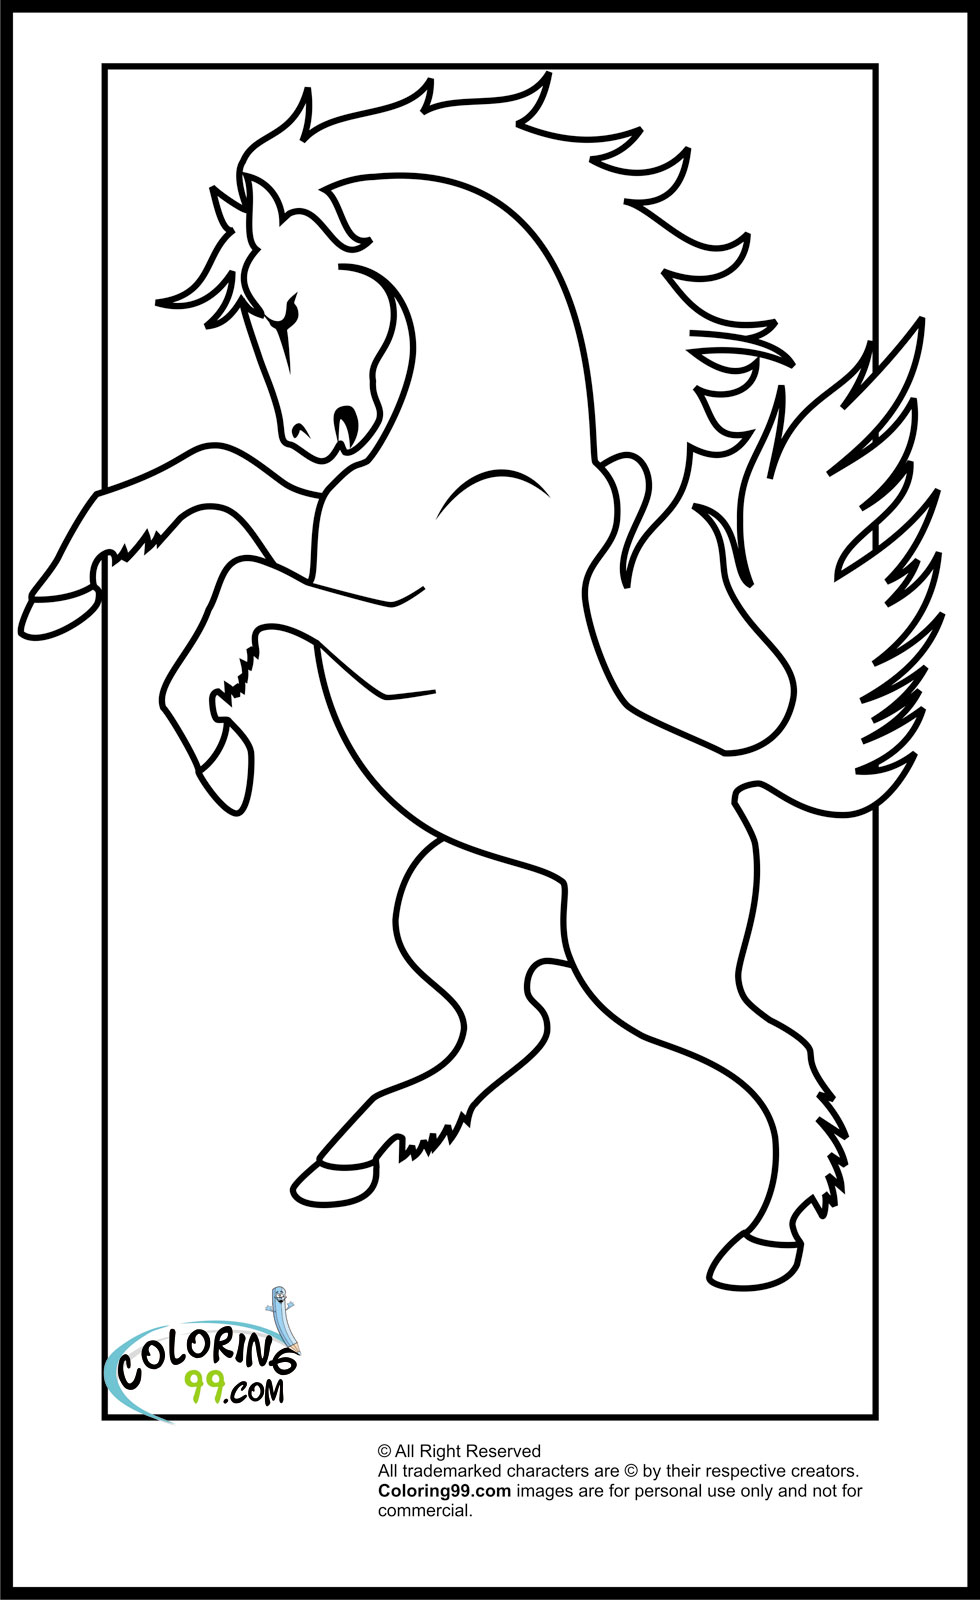 horse coloring image horse coloring pages team colors image horse coloring